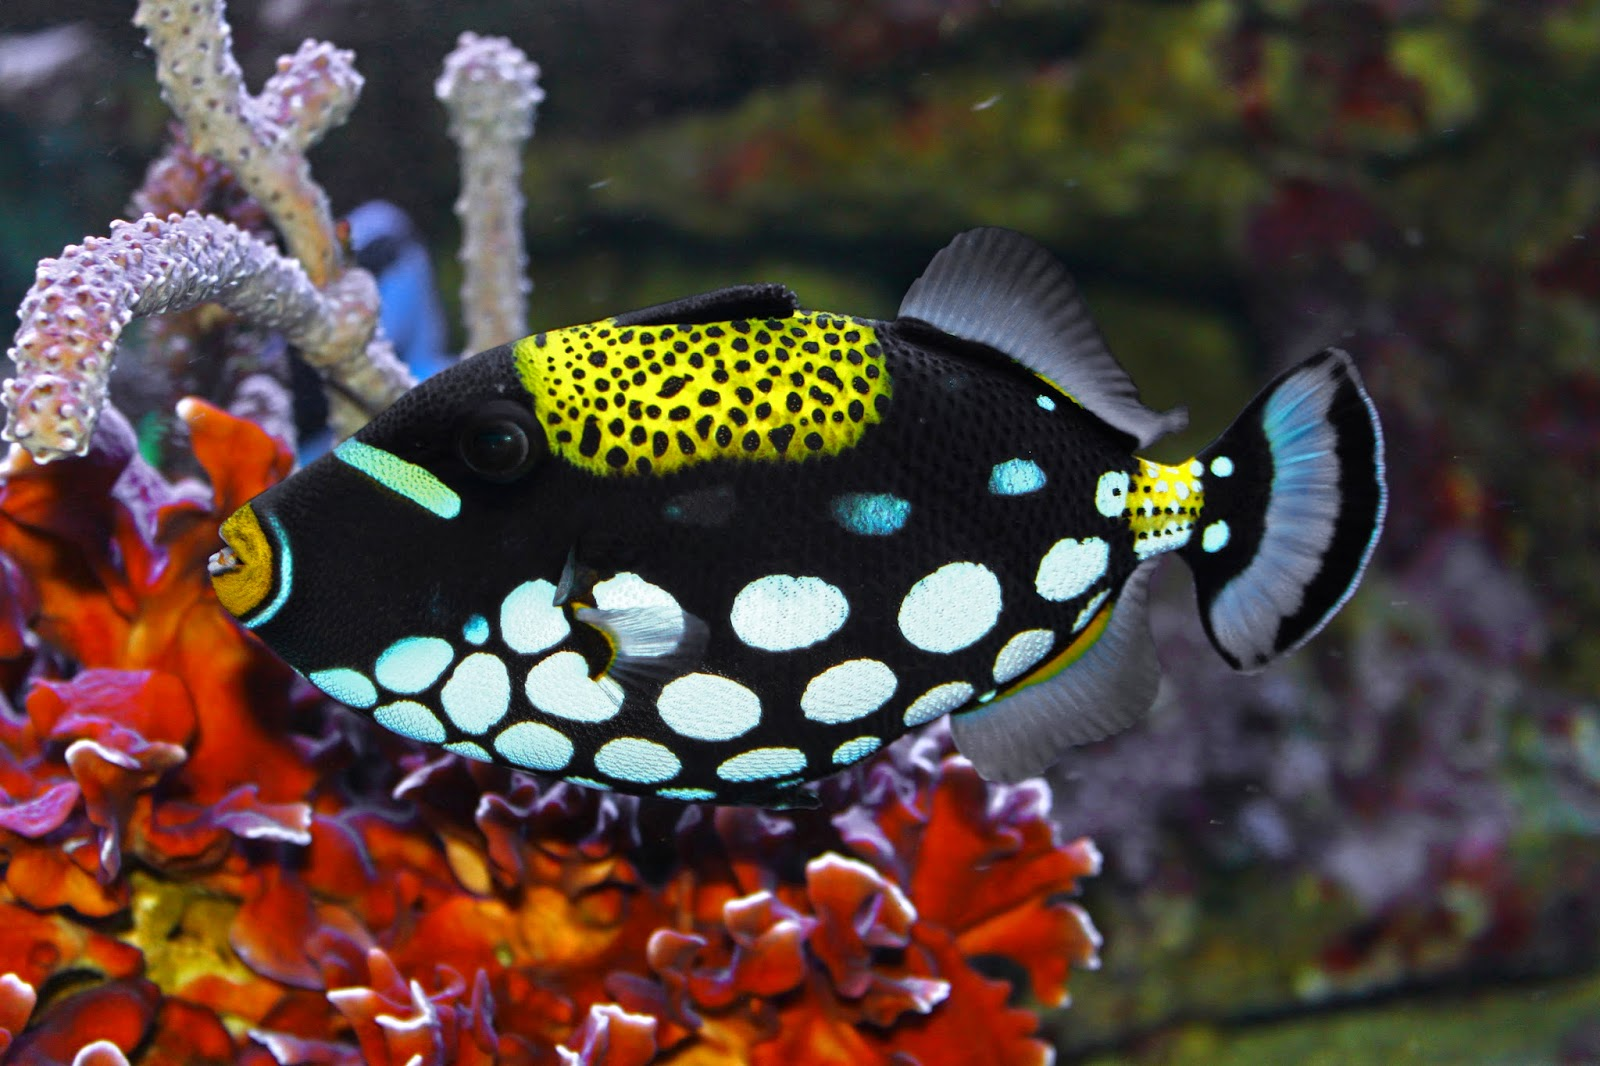 blok888 top 10 most beautiful saltwater fishes in the world